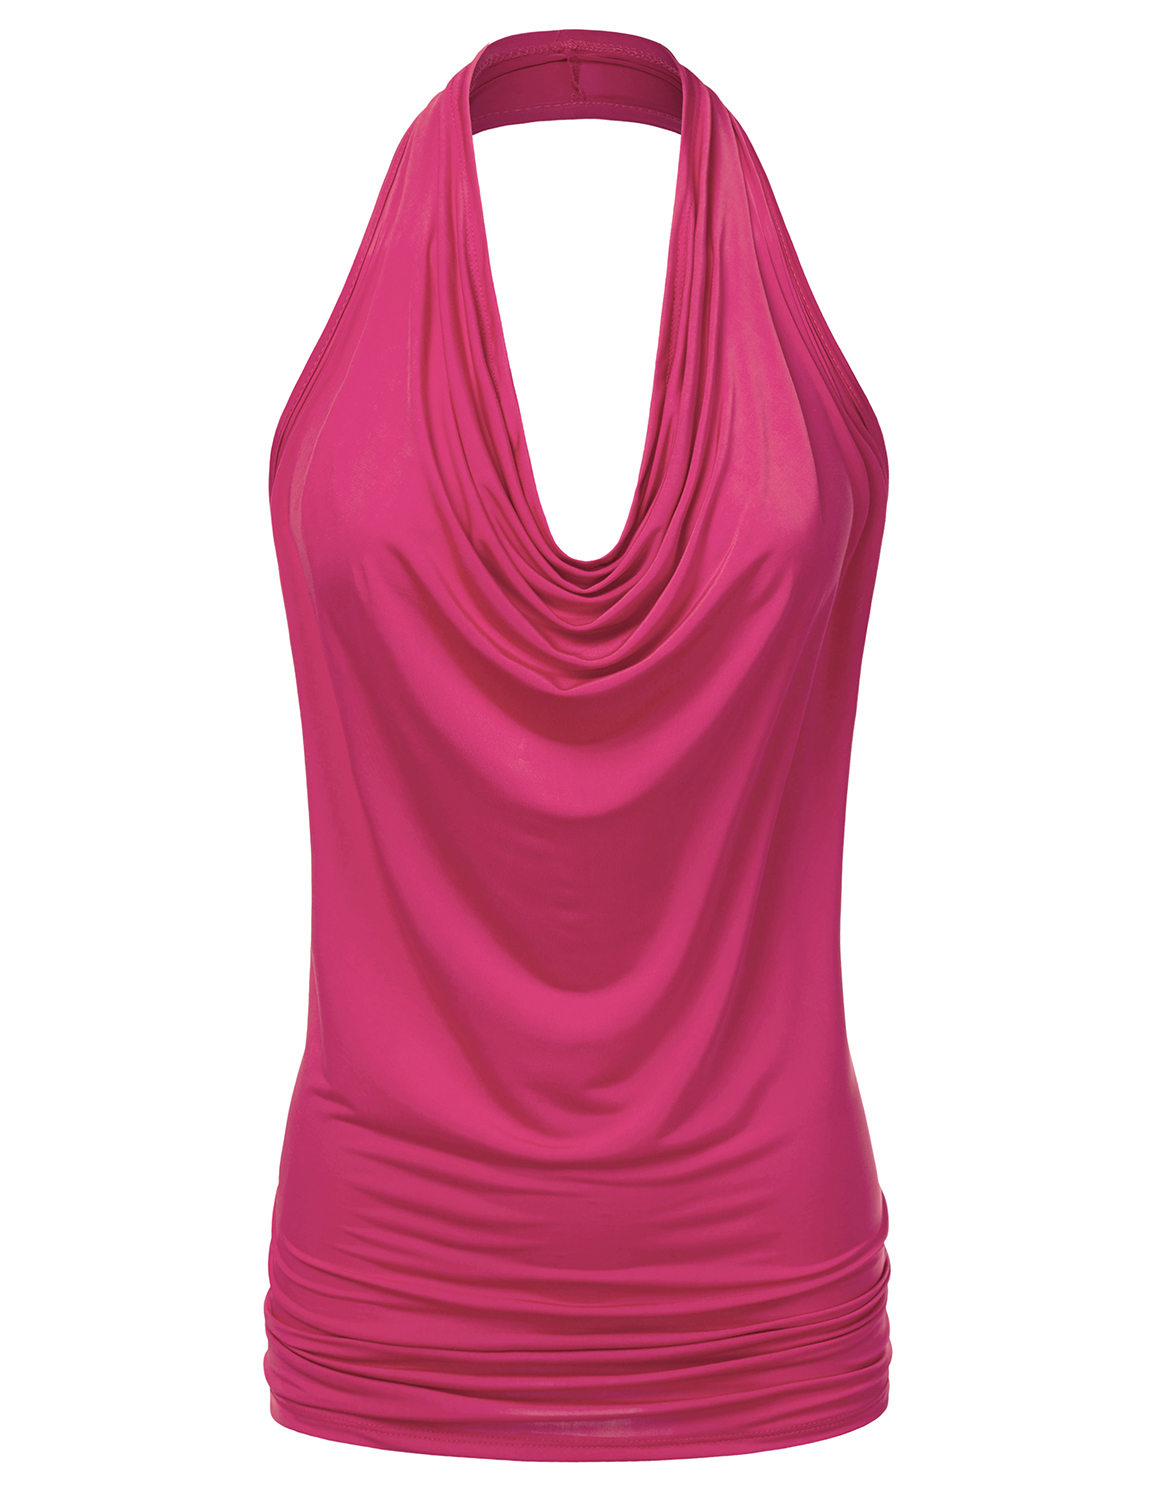 Doublju Women's Lightweight Casual Halter Neck Draped Backless Top FUCHSIA S